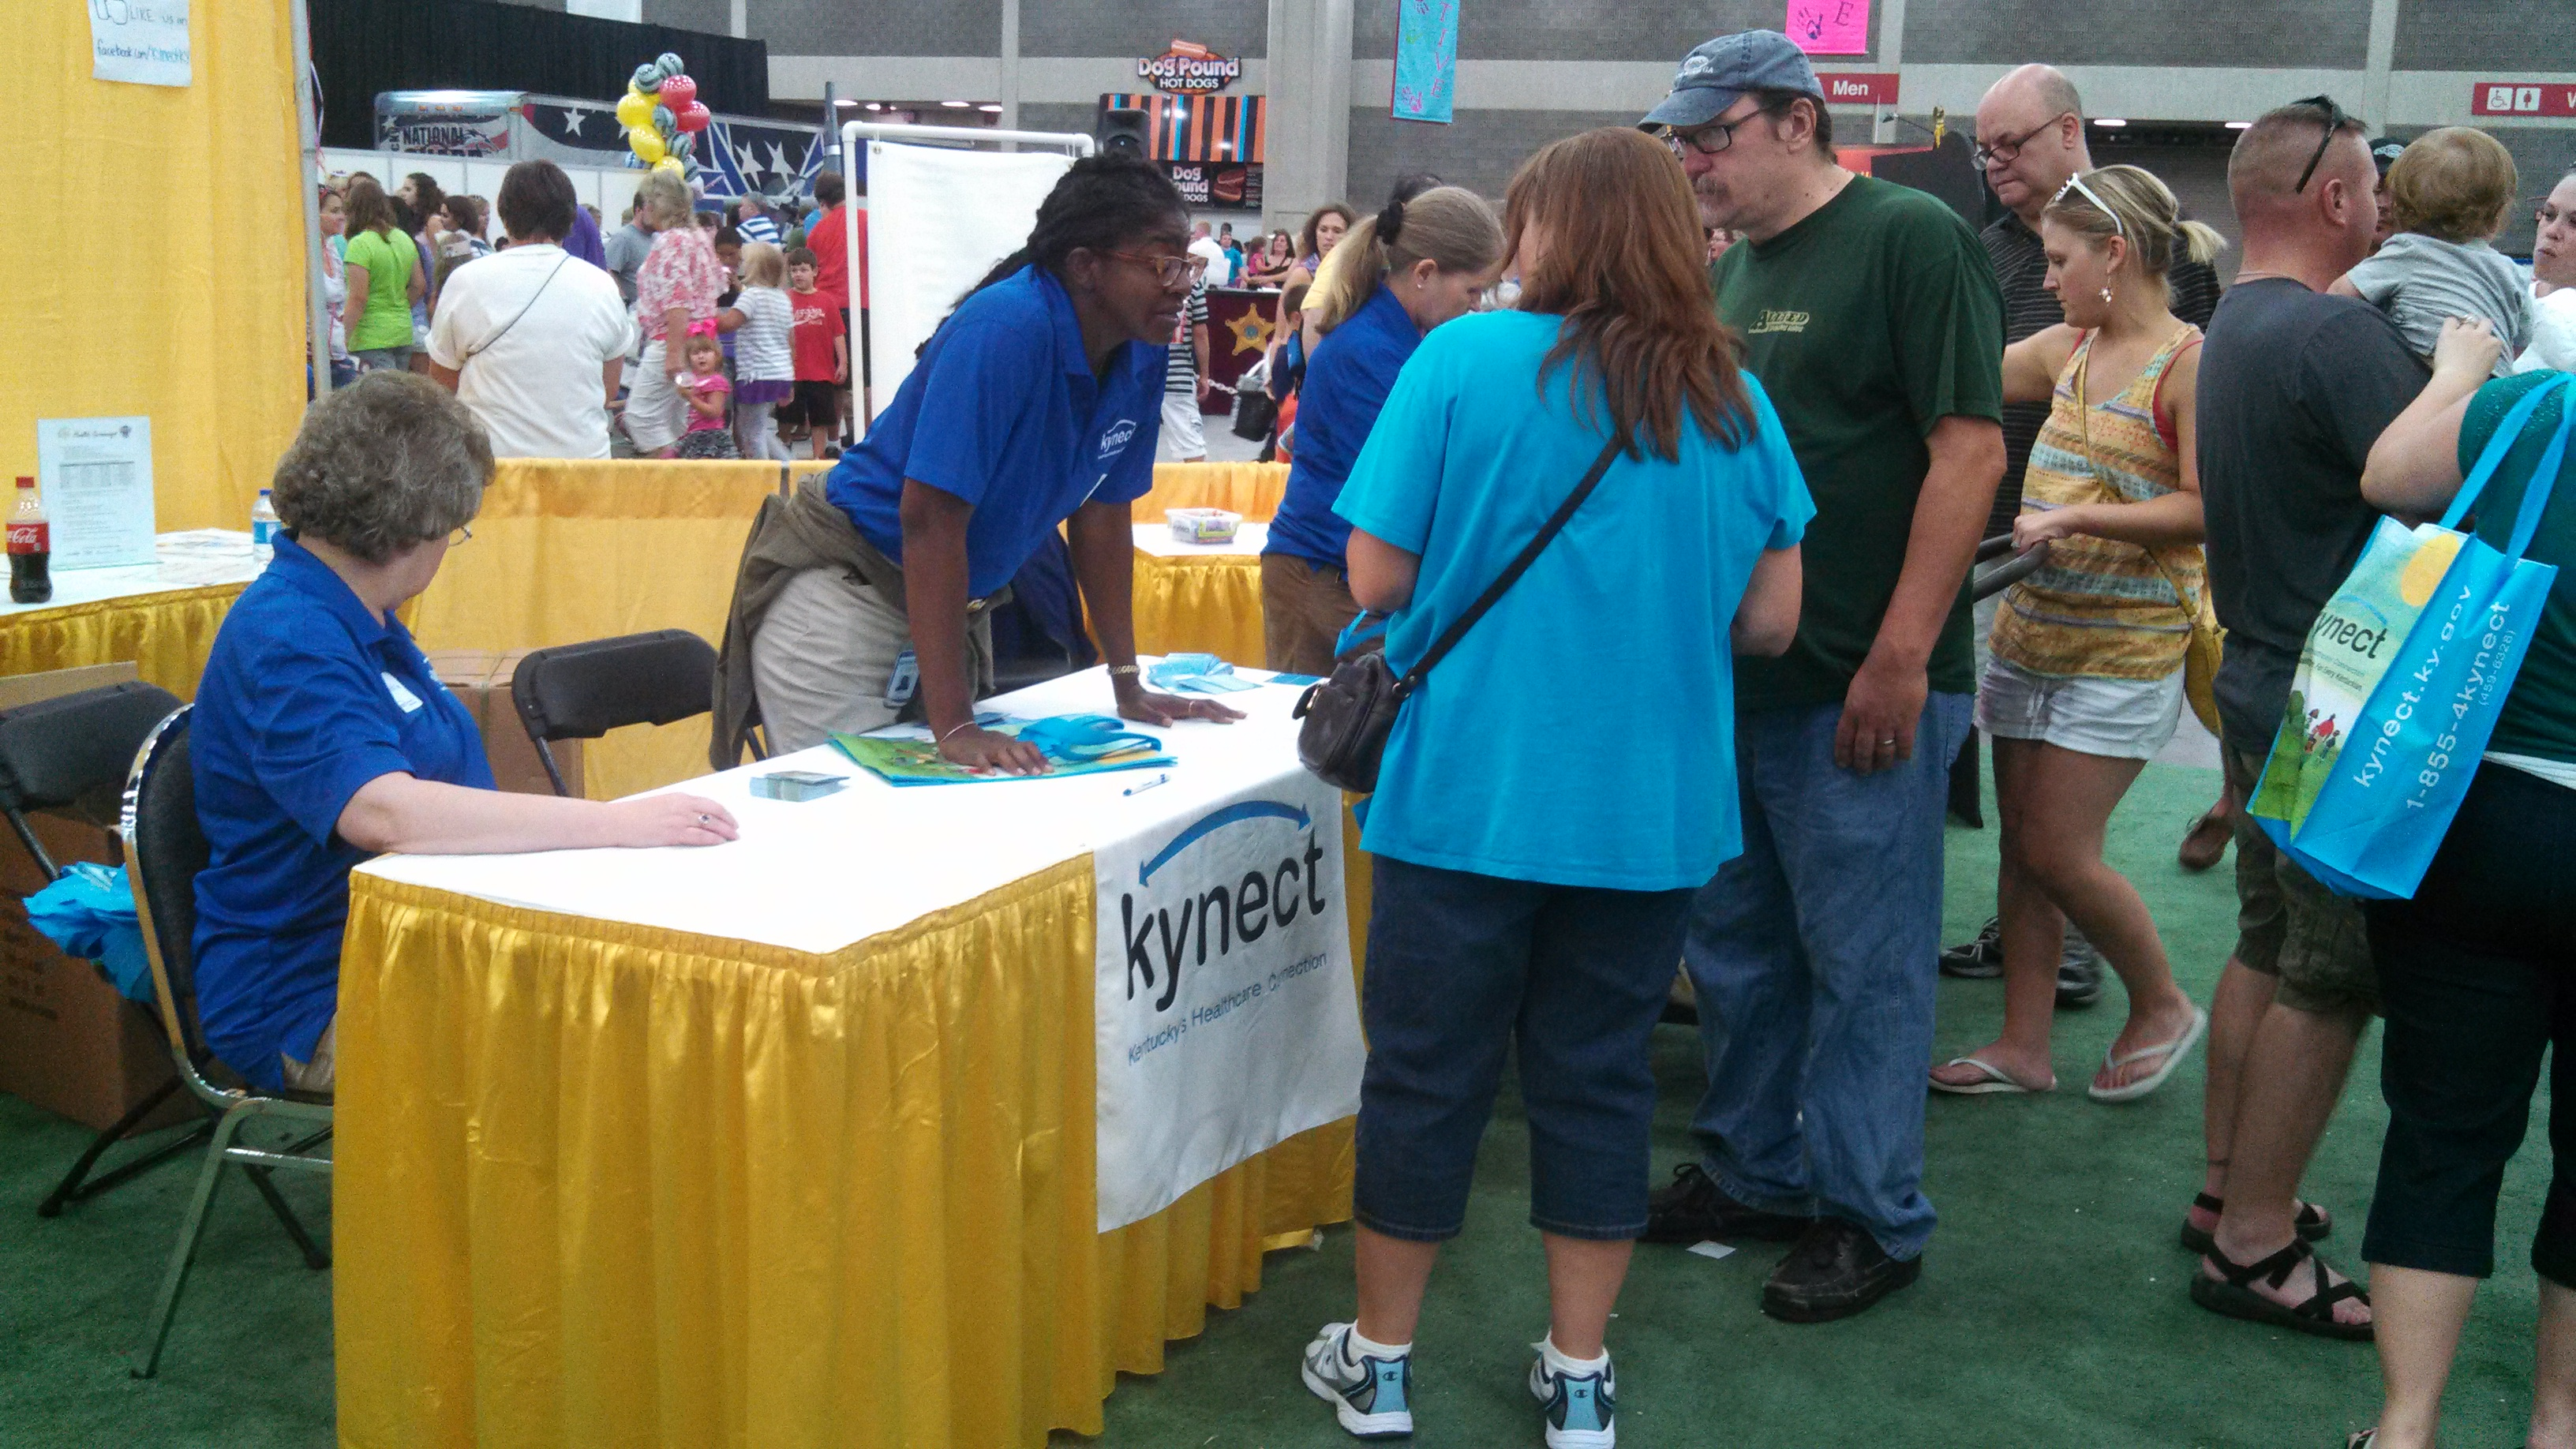 Kynect Booth at the Kentucky state fair